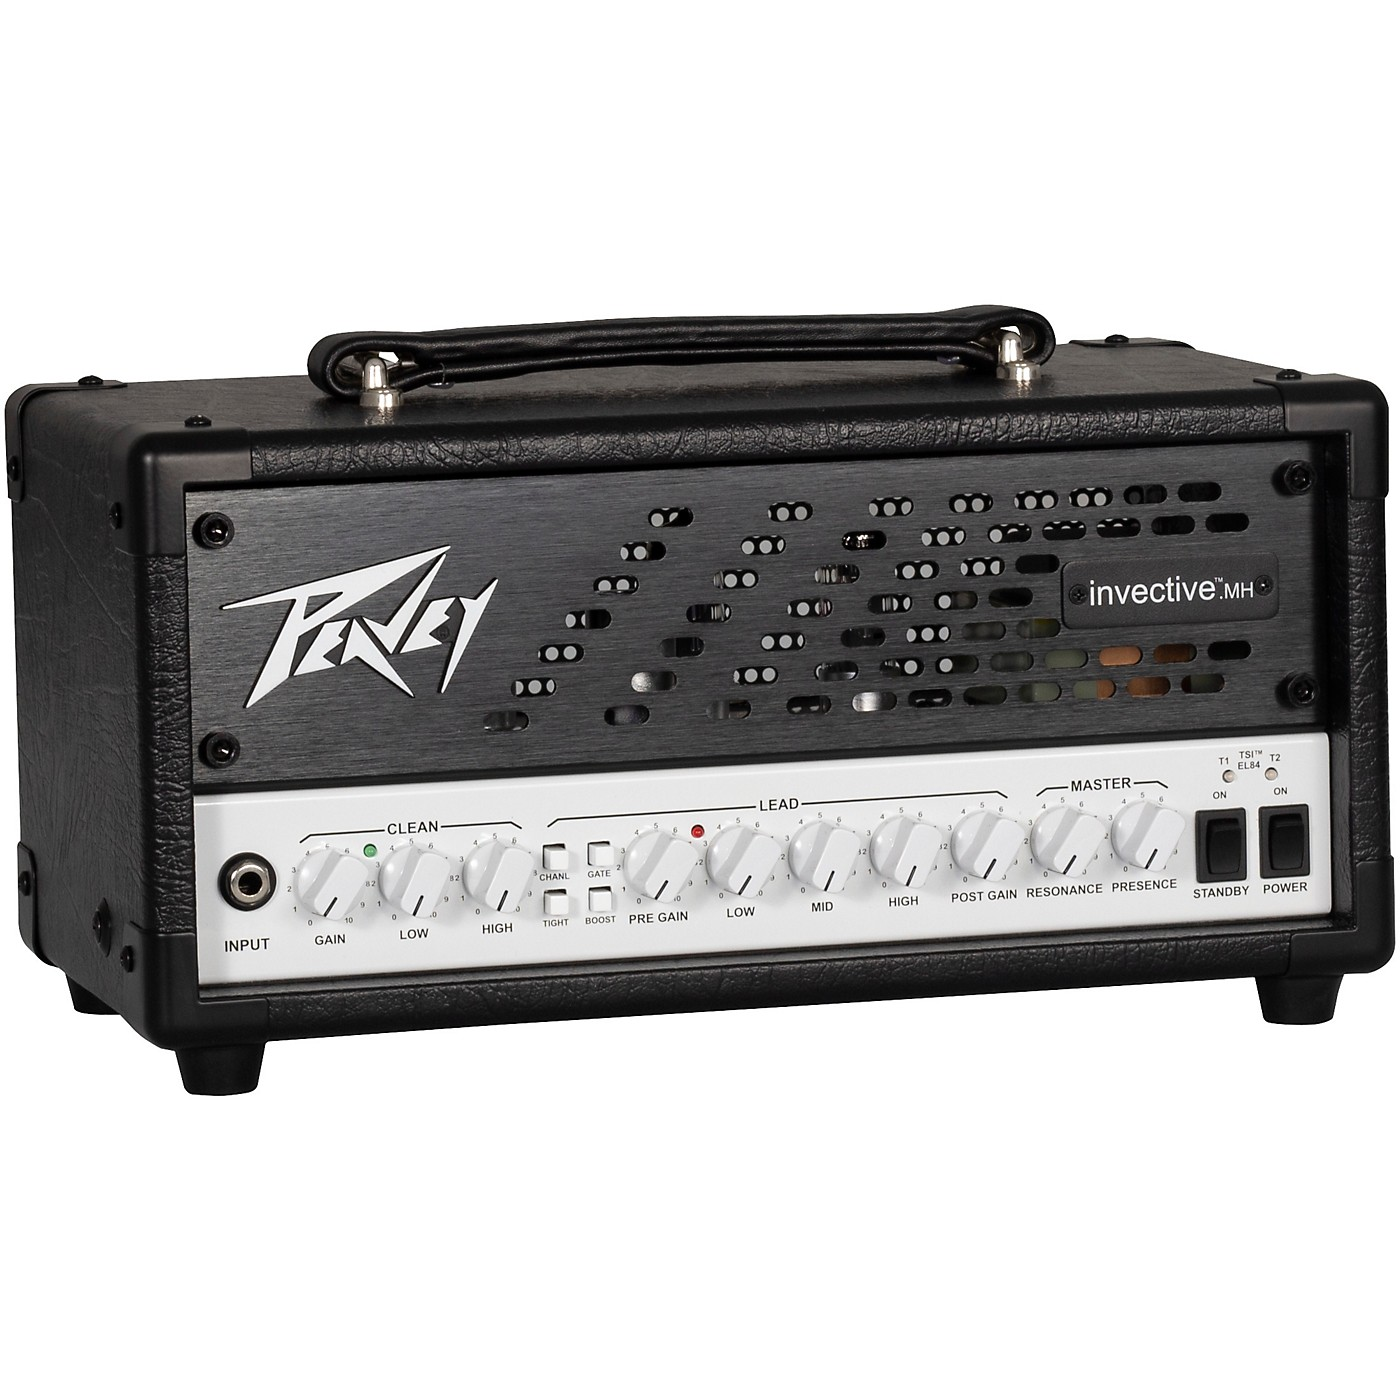 Peavey invective MH Mini 20W Tube Guitar Amp Head thumbnail